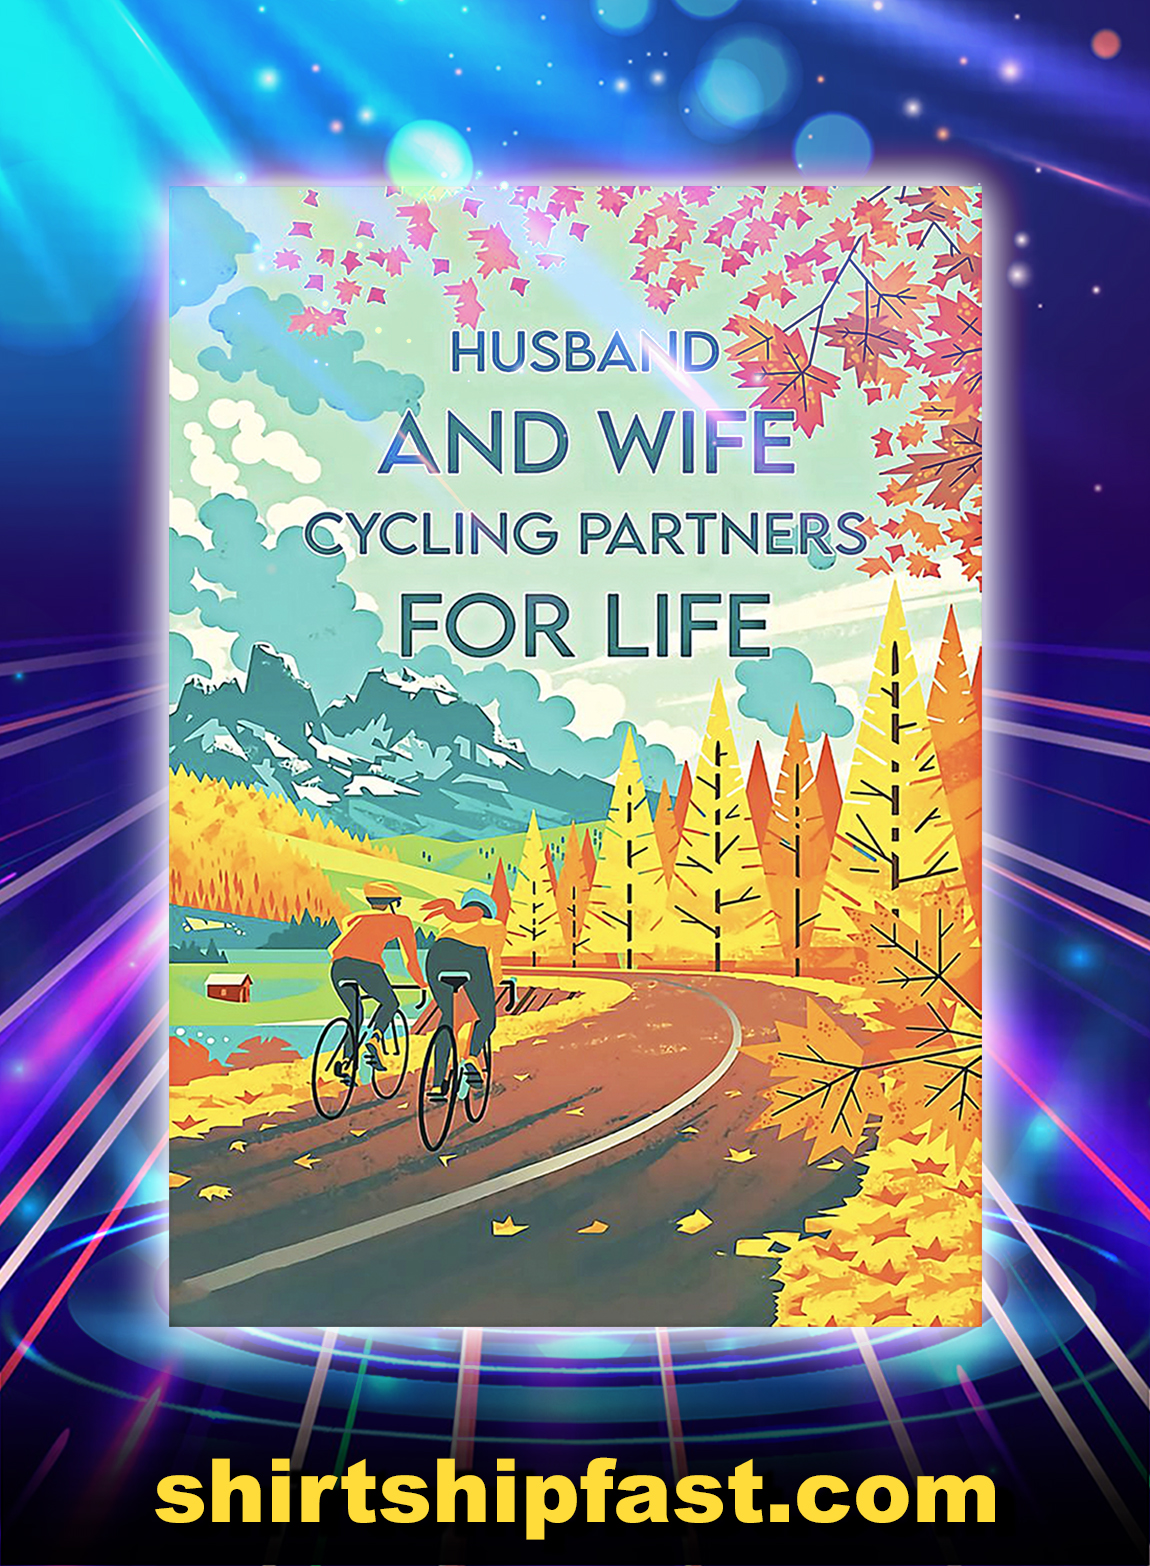 Husband and wife cycling partners for life poster - A3